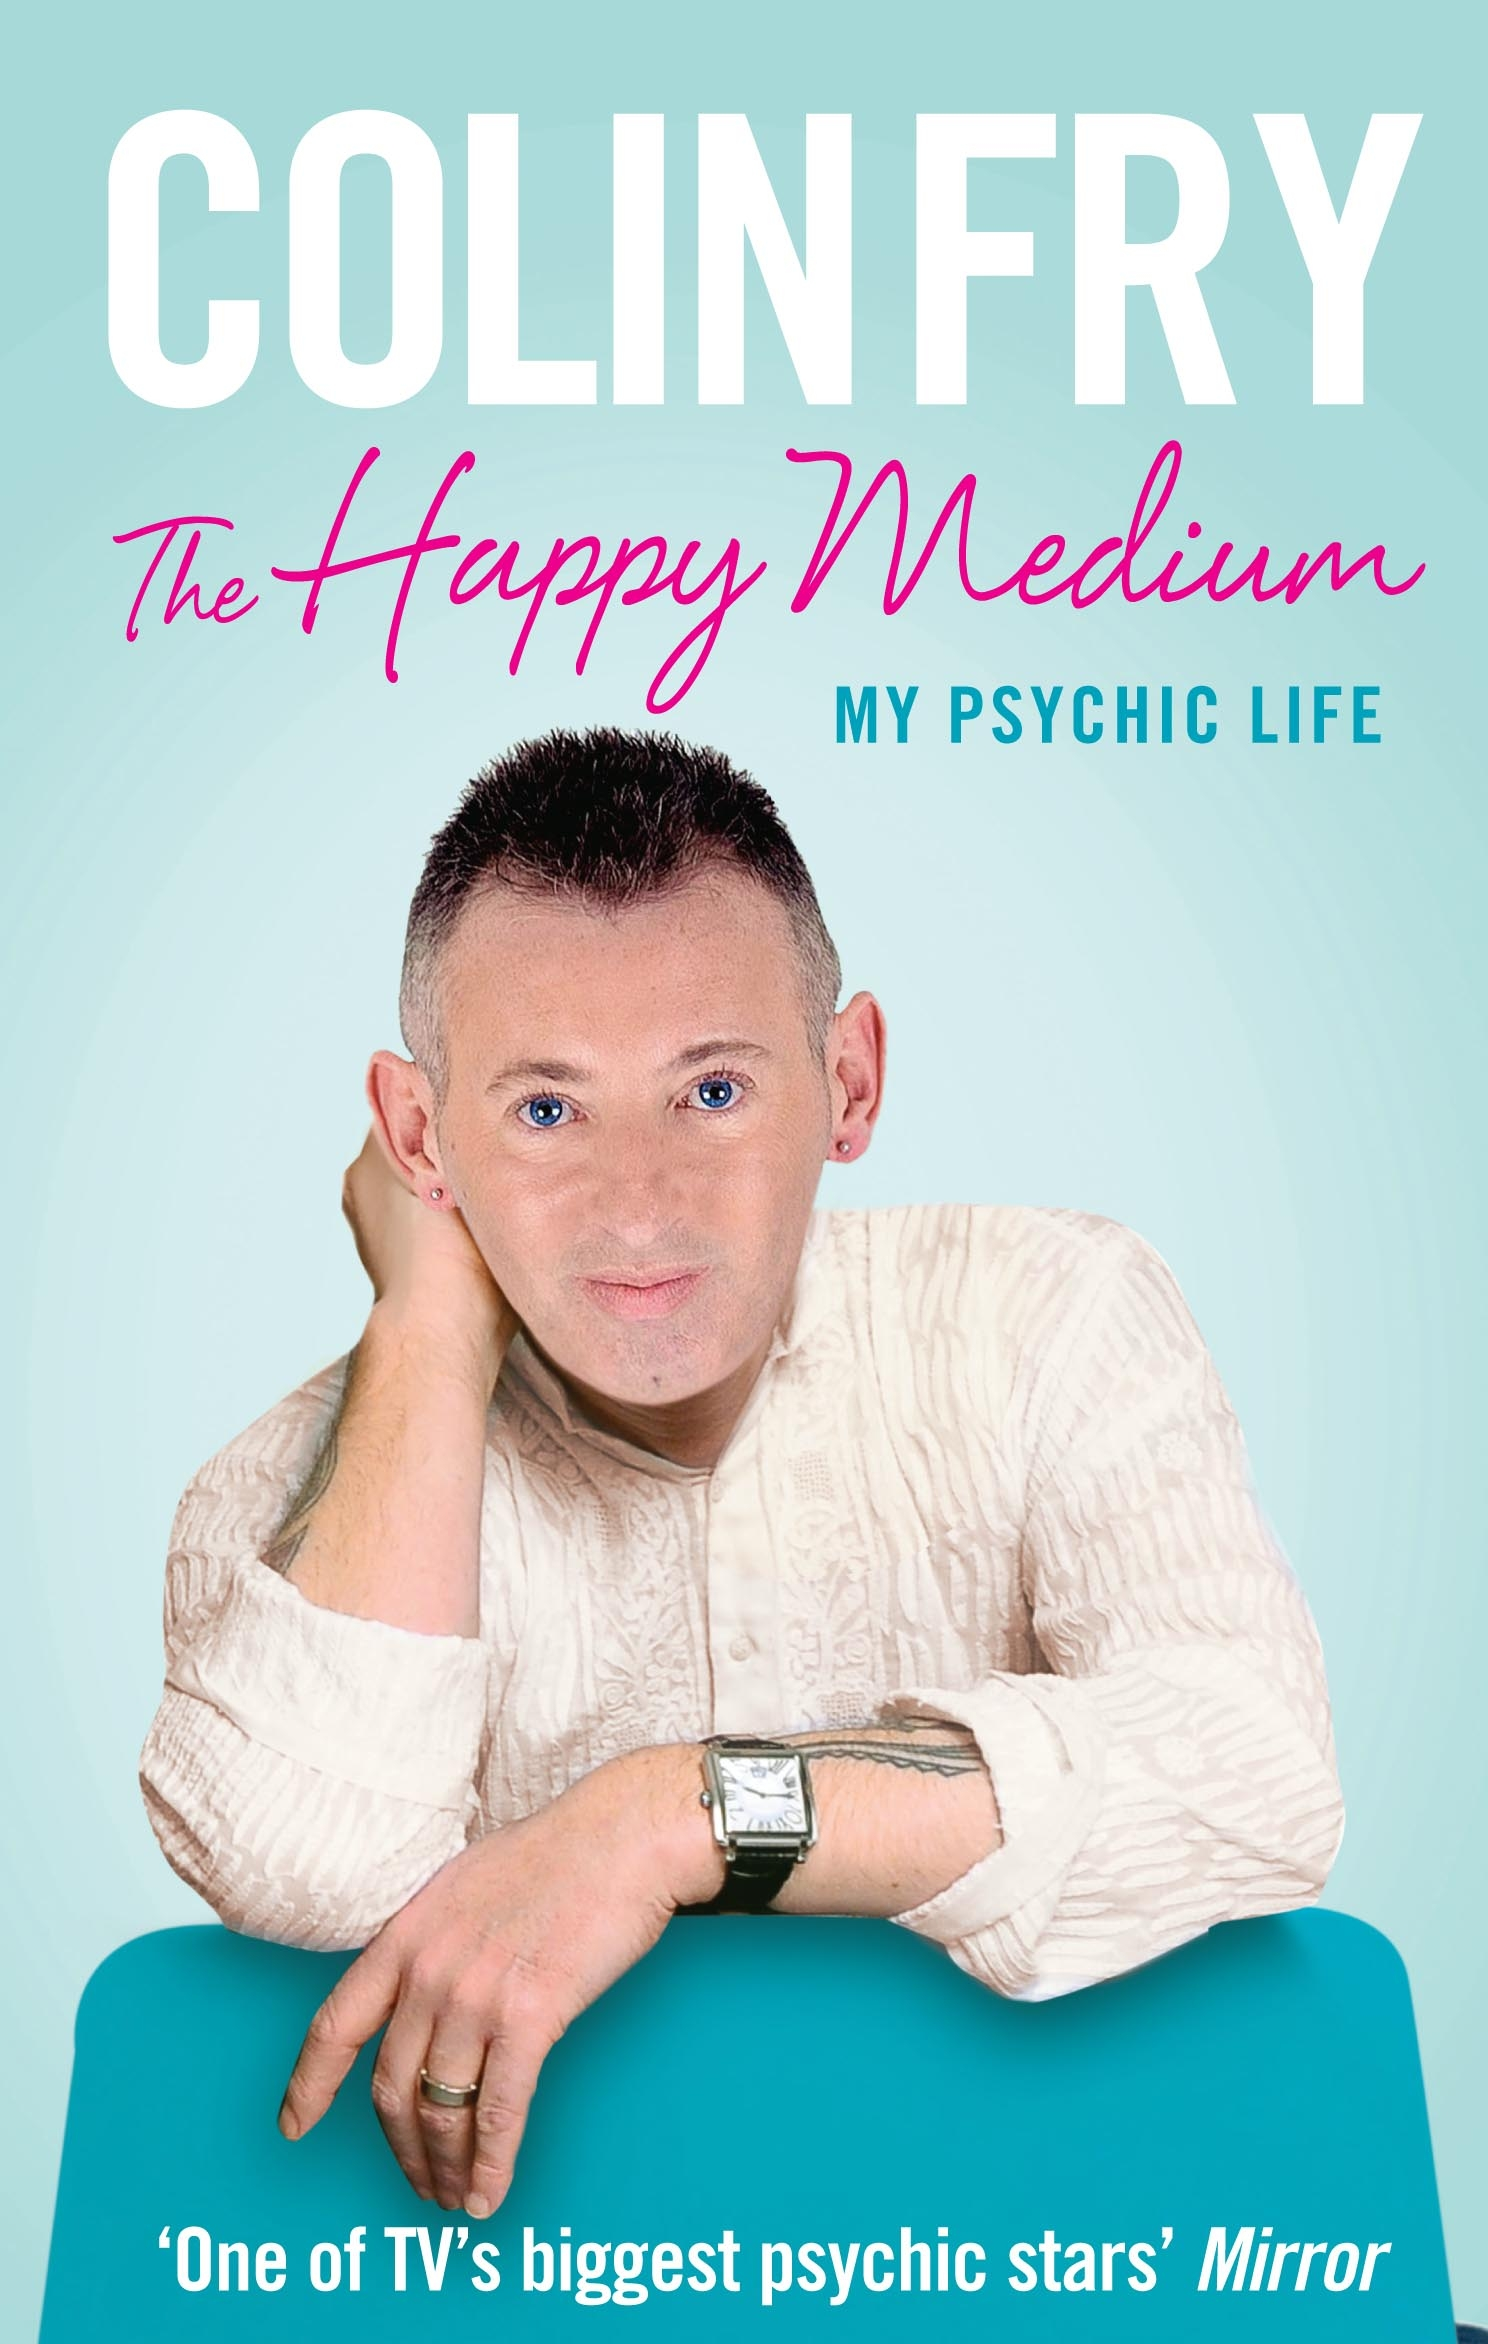 The Happy Medium: My Psychic Life by Colin Fry, ISBN: 9781448117871